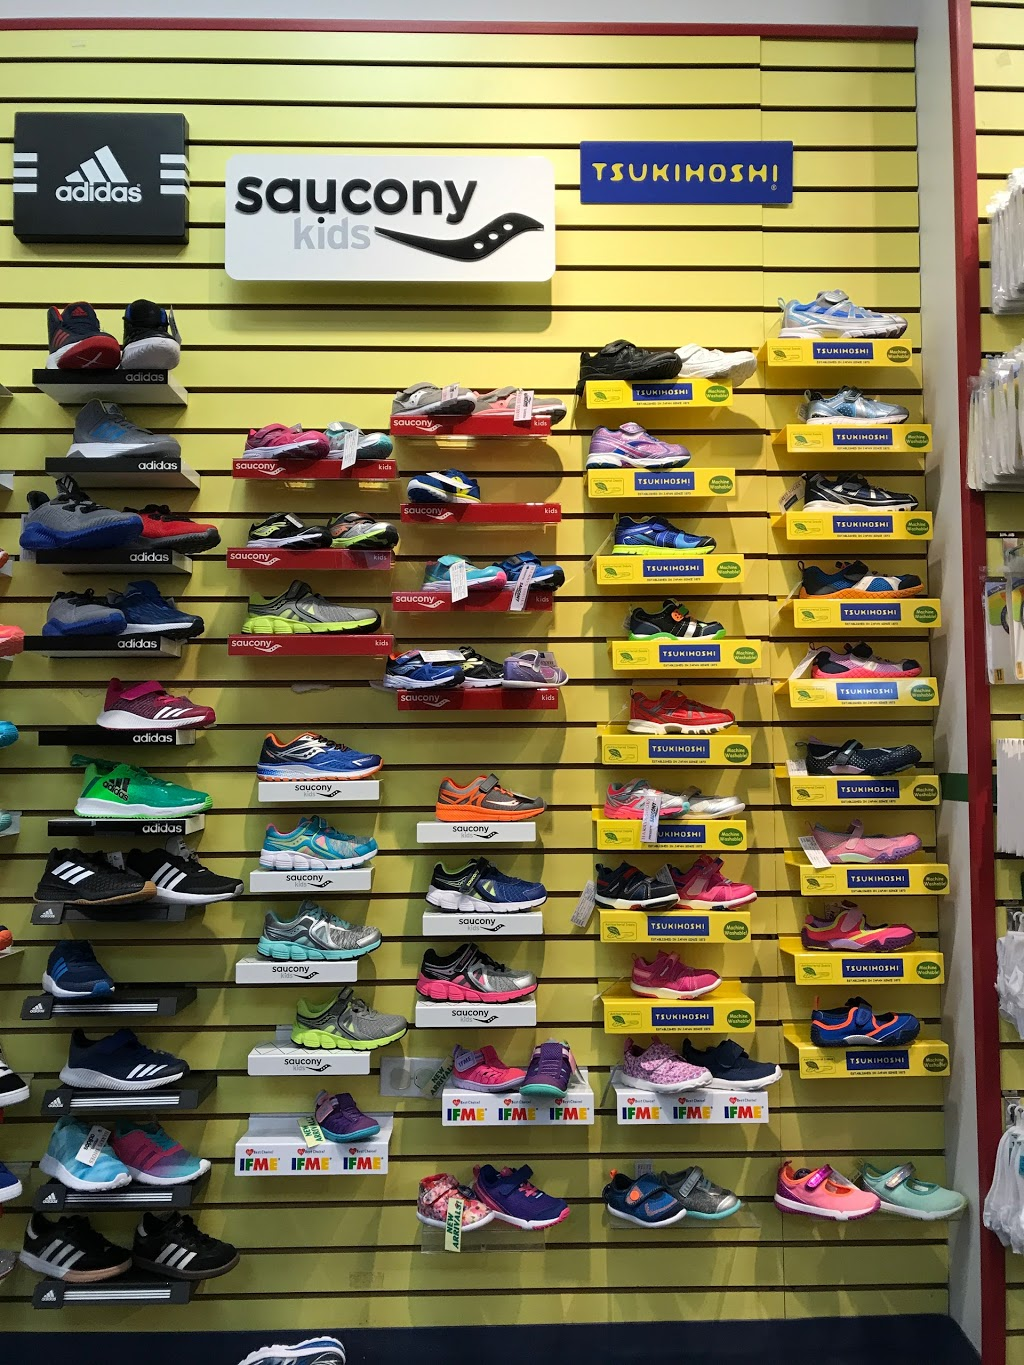 Harrys Shoes for Kids - shoe store  | Photo 7 of 10 | Address: 2315 Broadway, New York, NY 10024, USA | Phone: (855) 642-7797